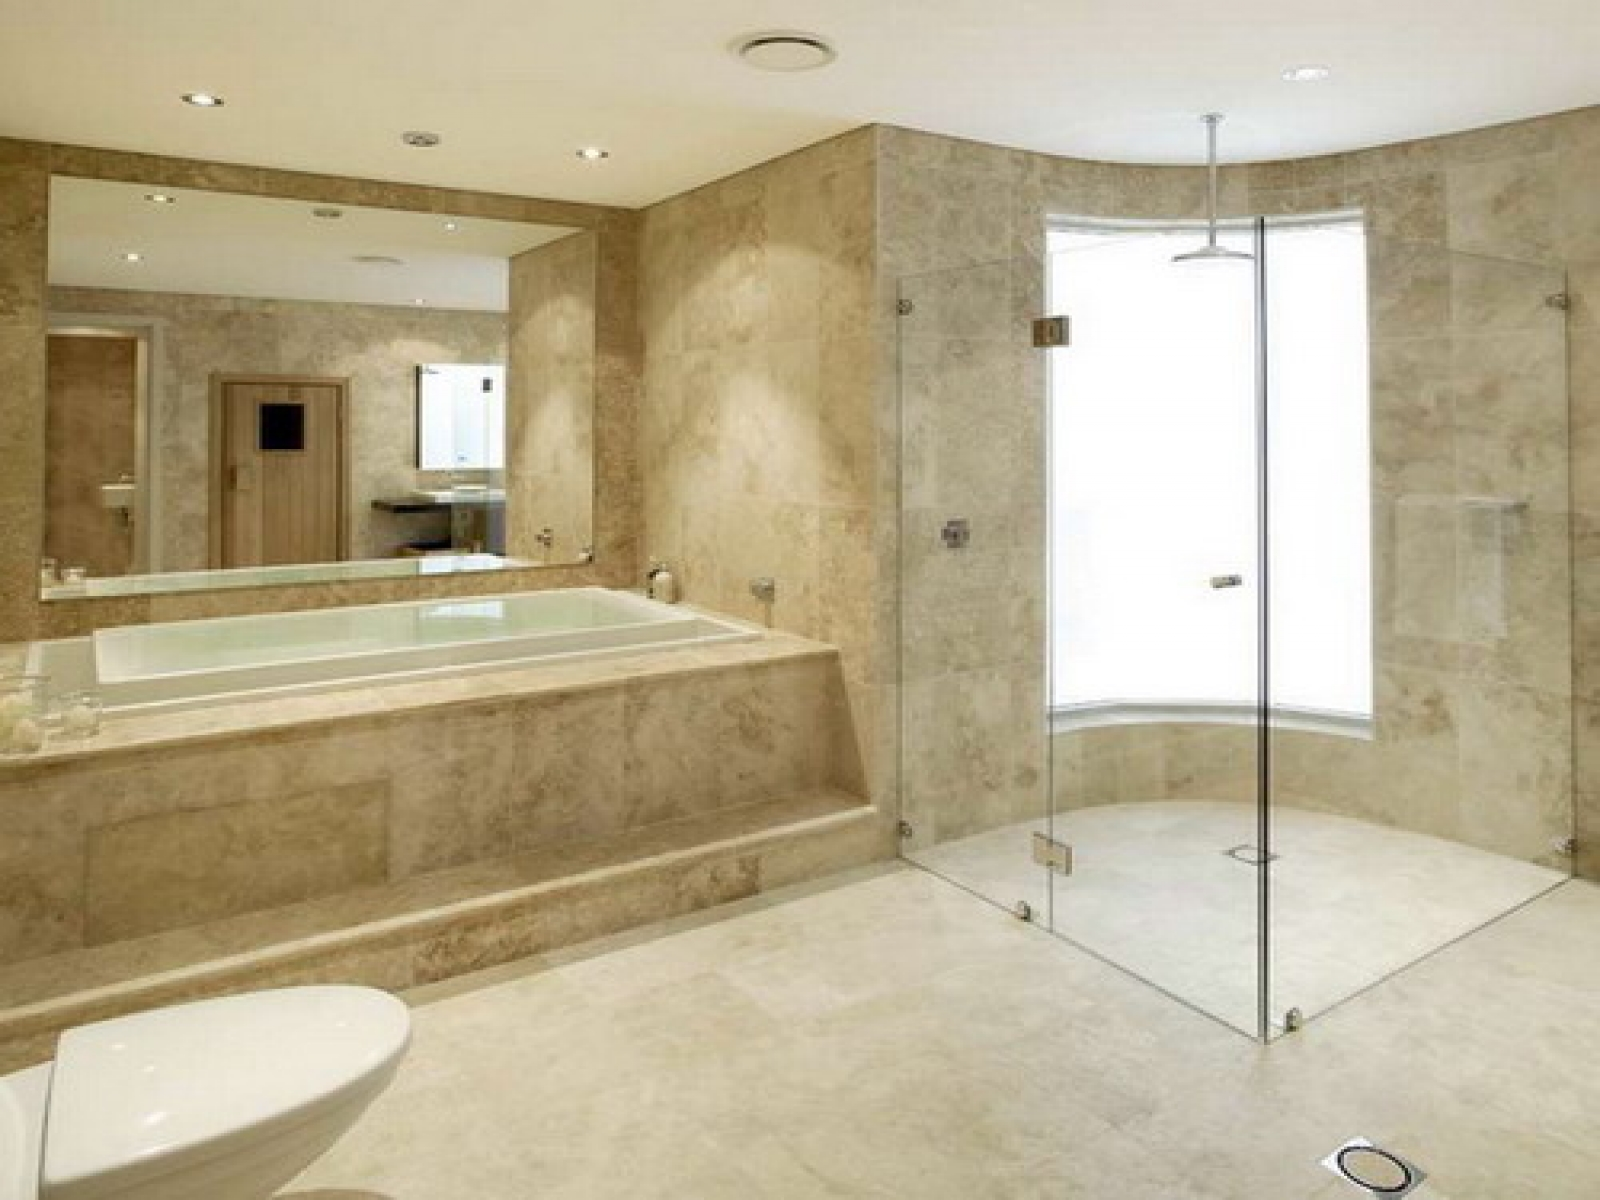 travertine bathroom tile - home design ideas and pictures